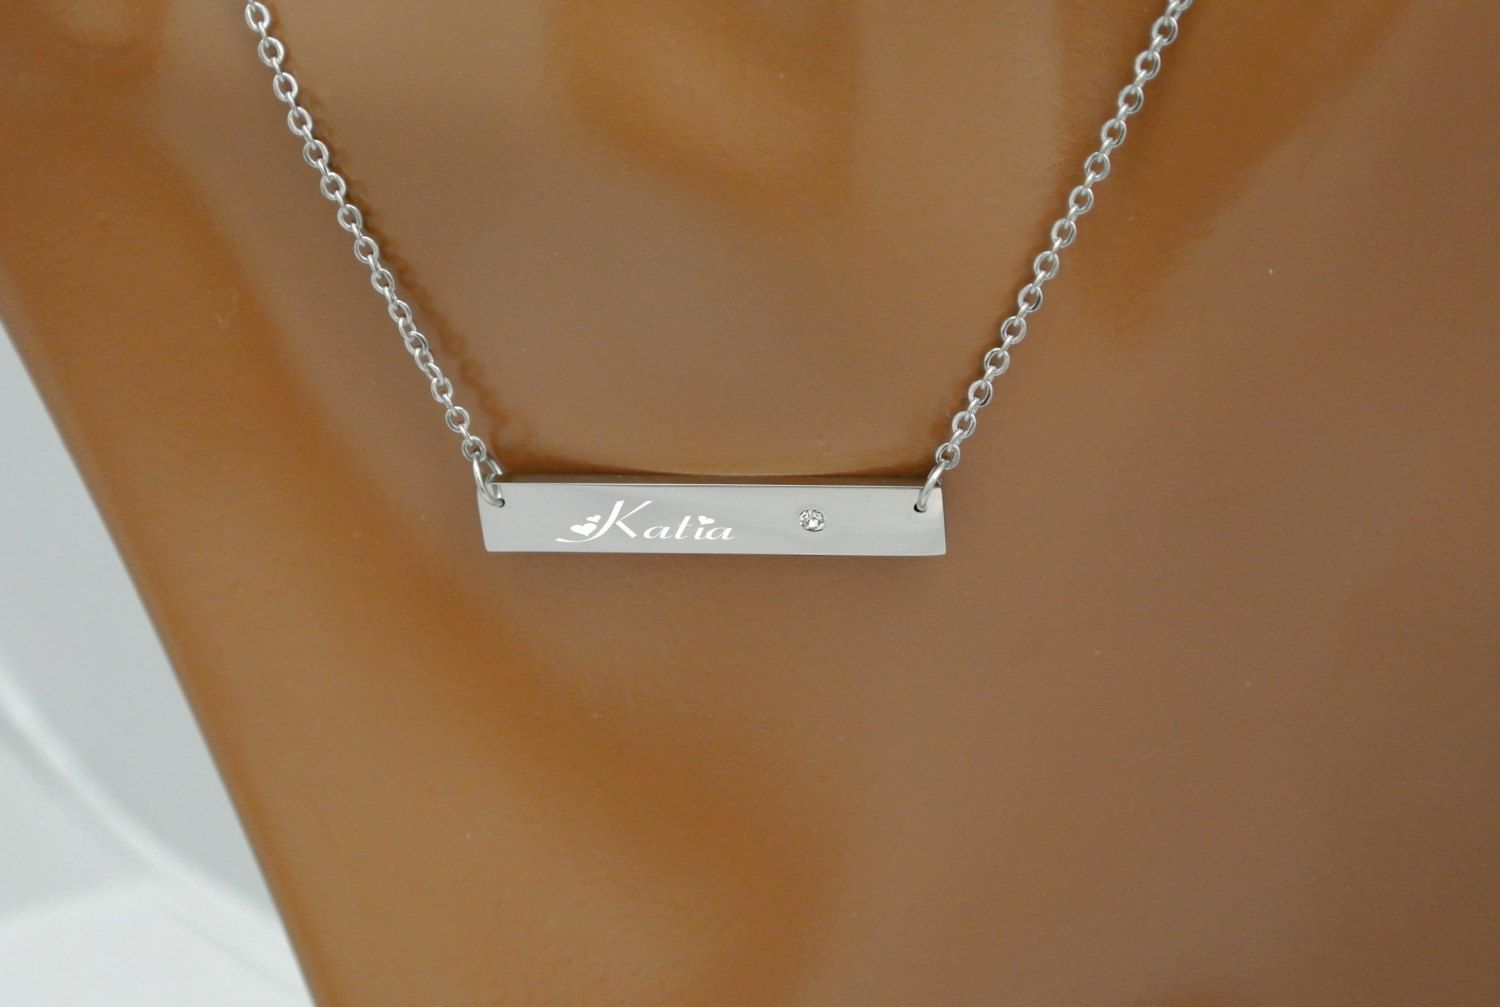 Engraved Bar Necklace, Coordinates Necklace, Silver Horizontal Bar Necklace, Bridesmaids Gifts, Personalized Necklaces, Valentine's Day Gift